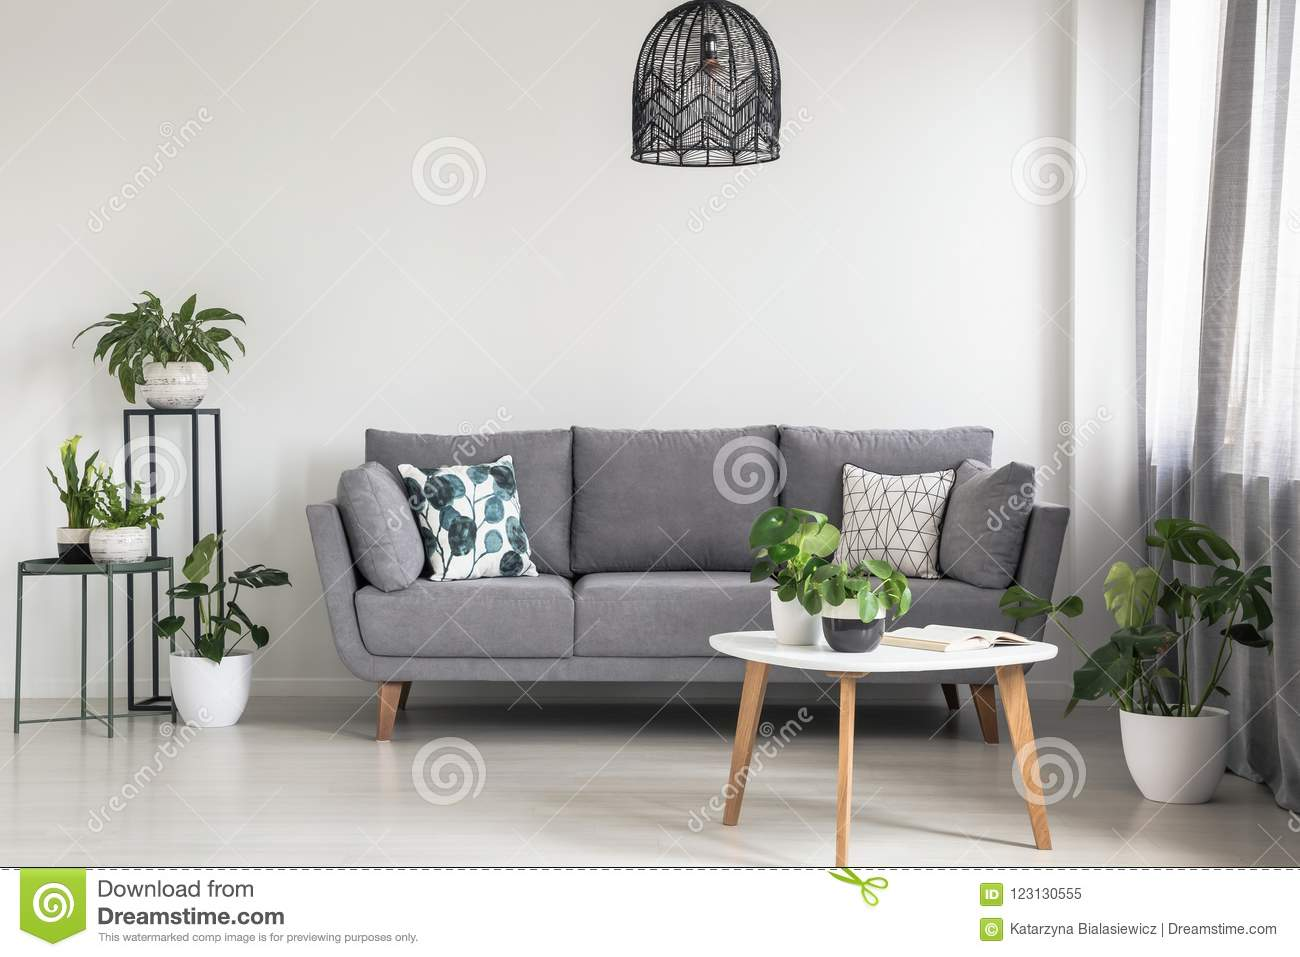 real photo of a simple living room interior with a grey